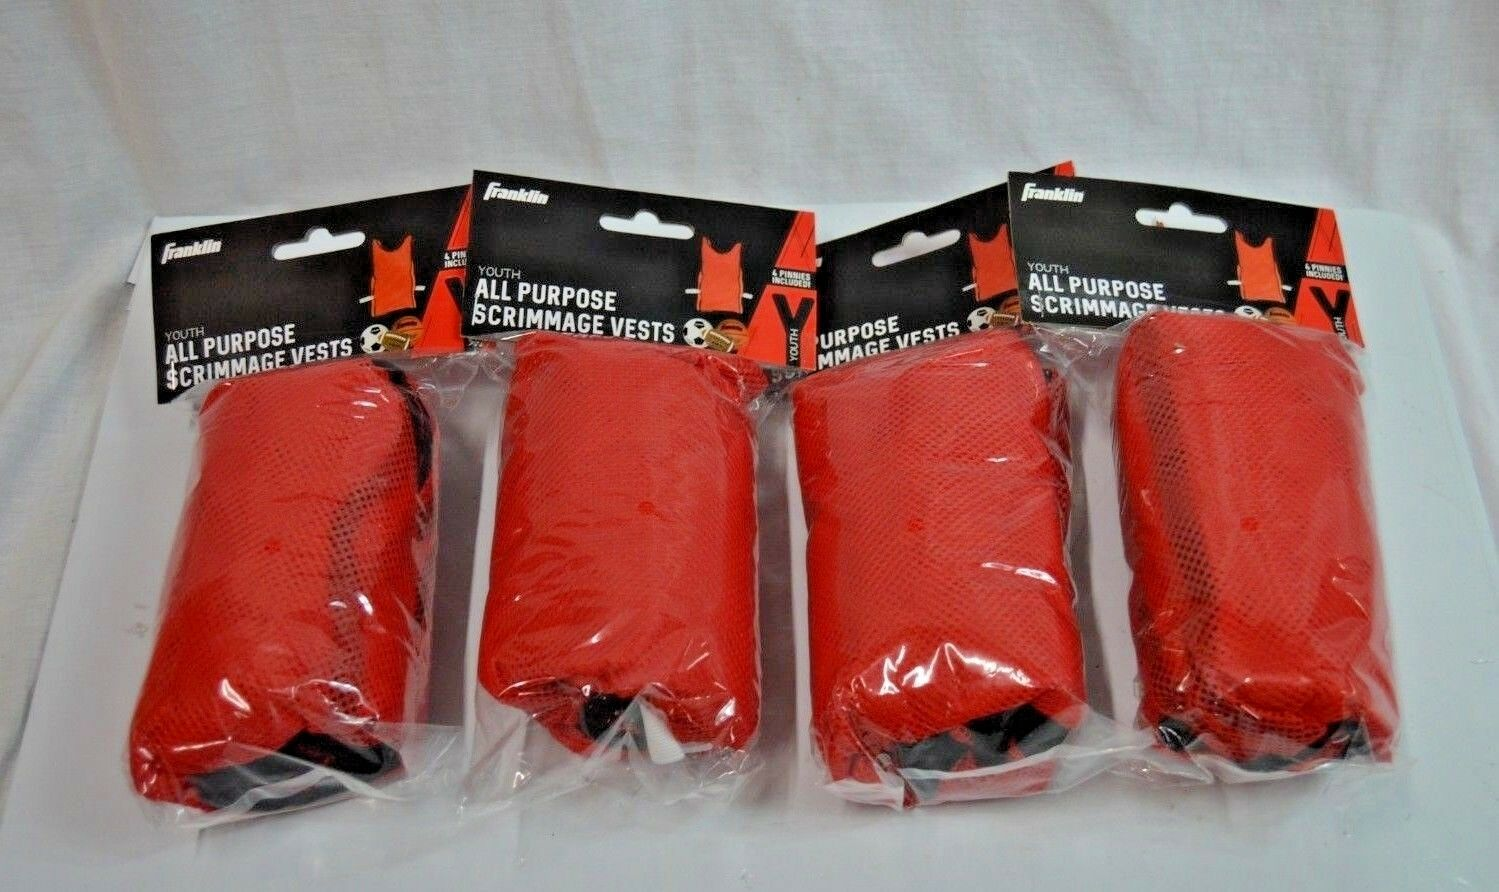 Franklin Youth All Purpose Scrimmage Vests, Red (4 Pk, 16 Pinnies Total)